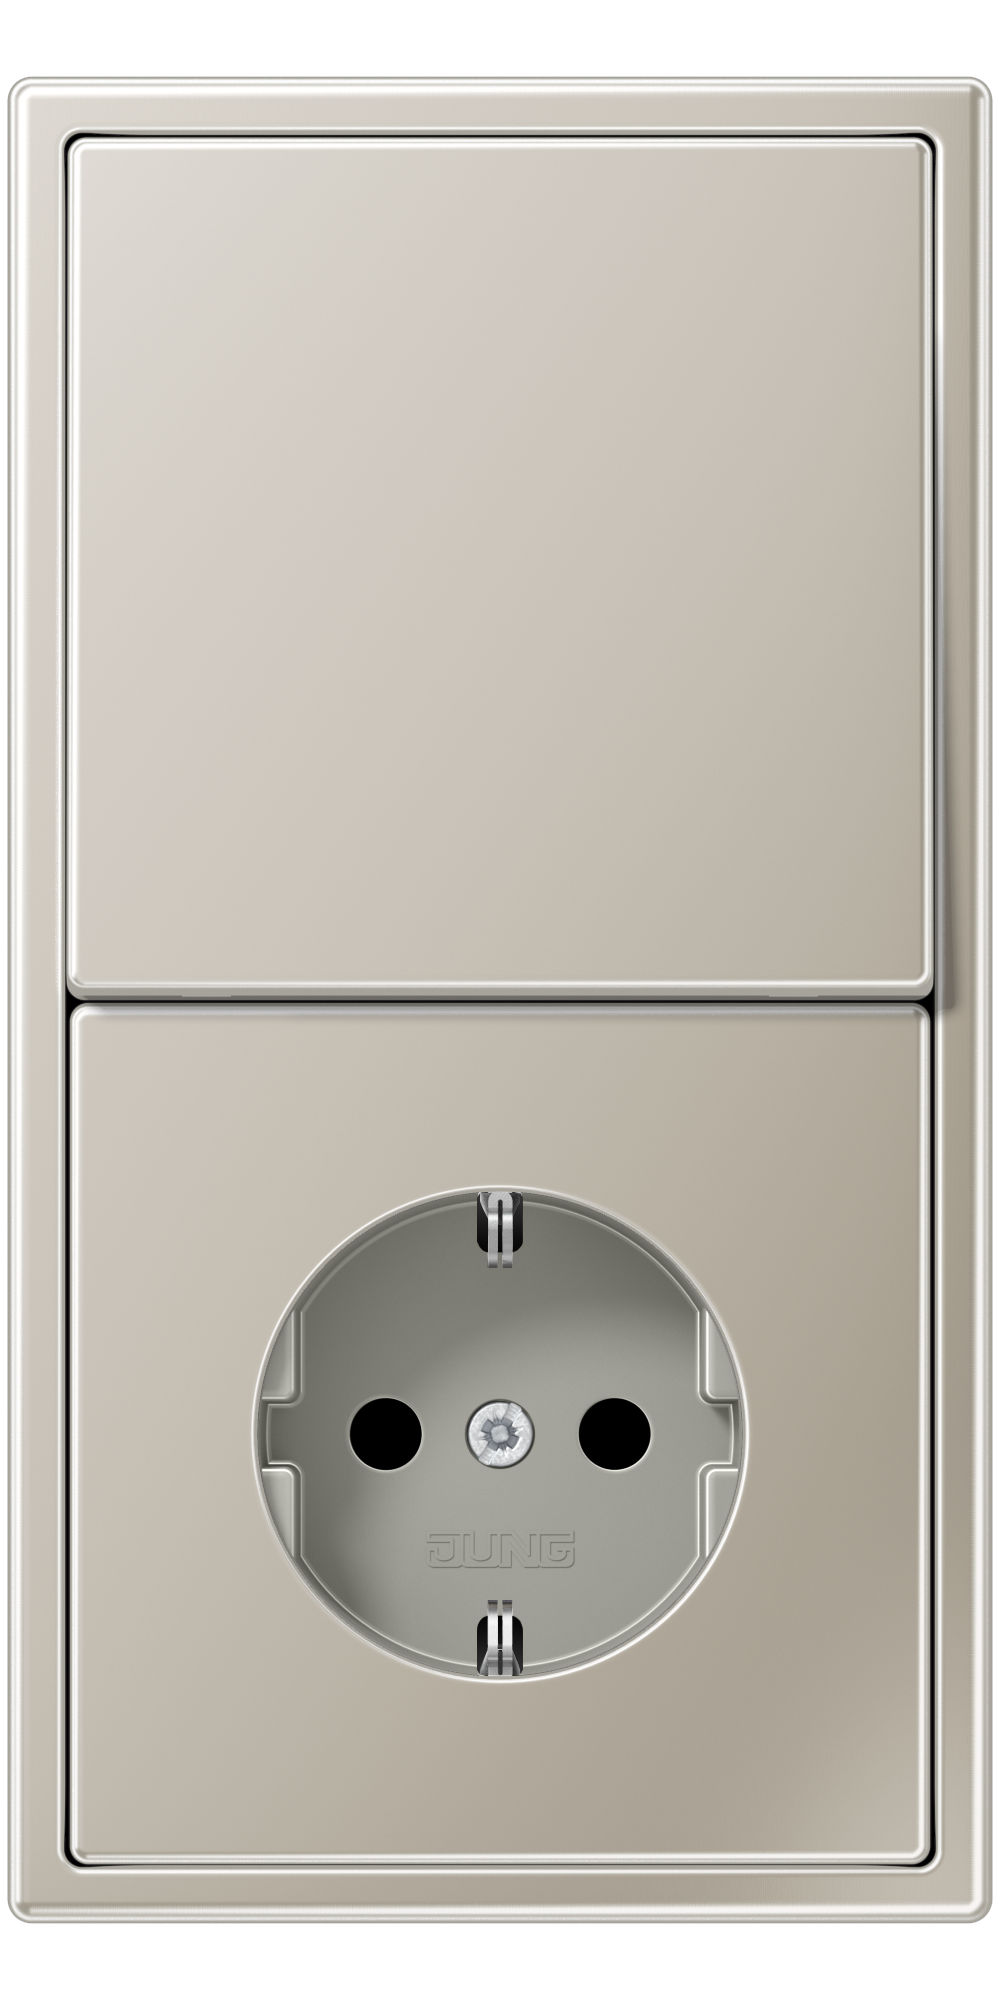 JUNG_LS990_stainless_steel_switch-socket